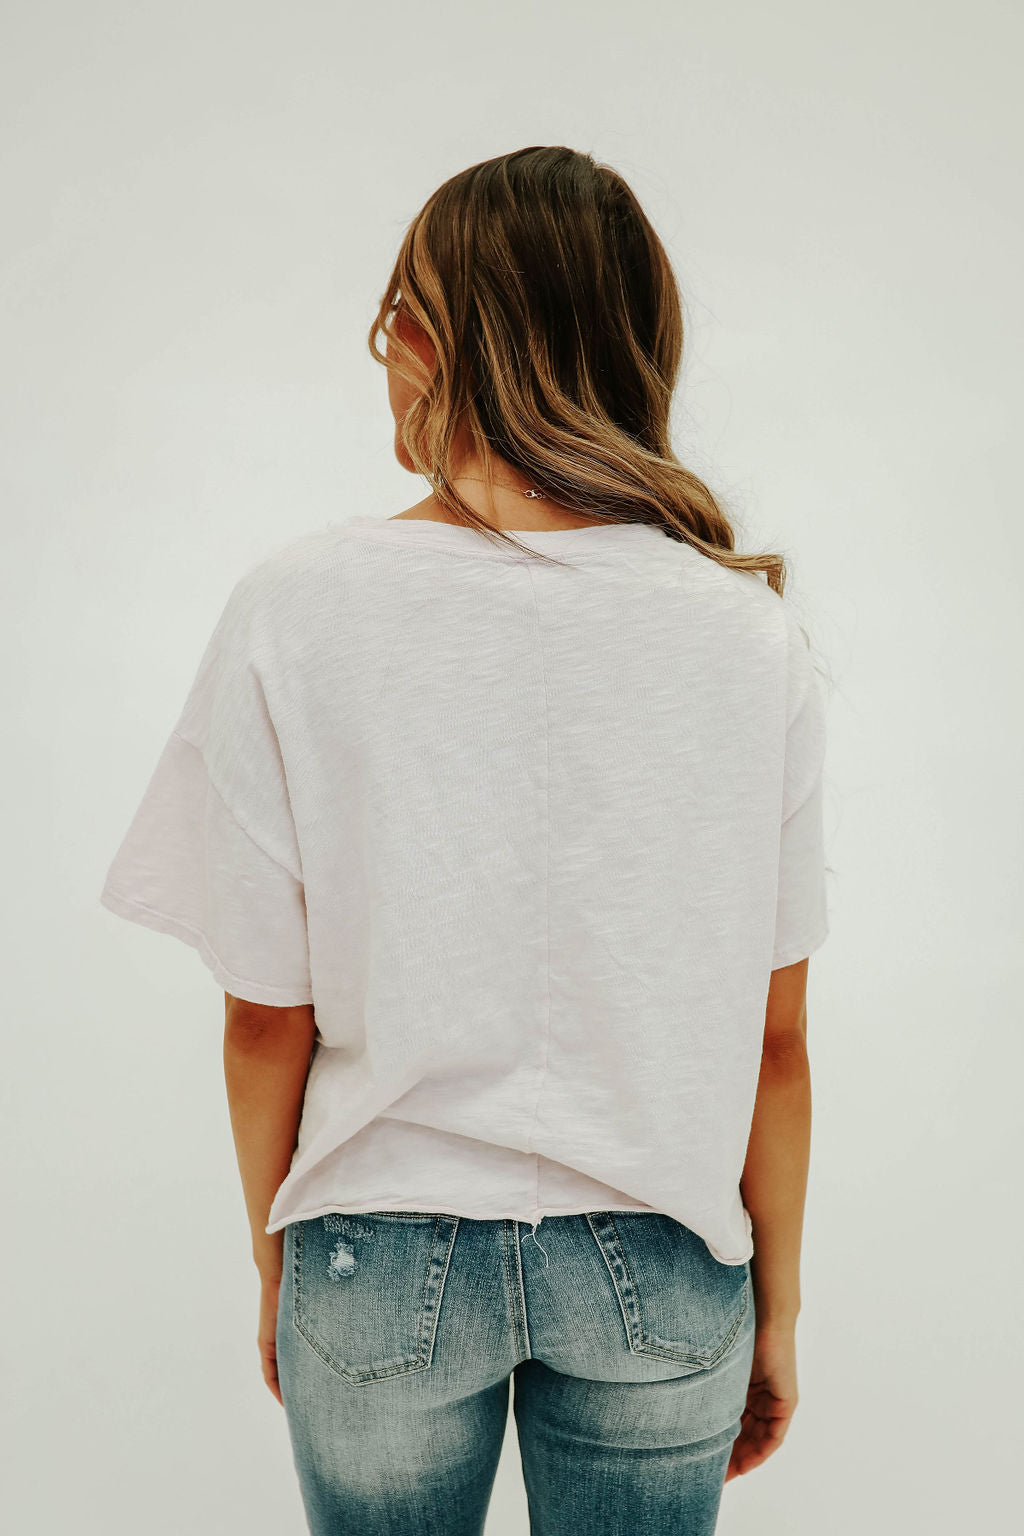 THE CORALINE CROPPED TOP IN SOFT LAVENDER